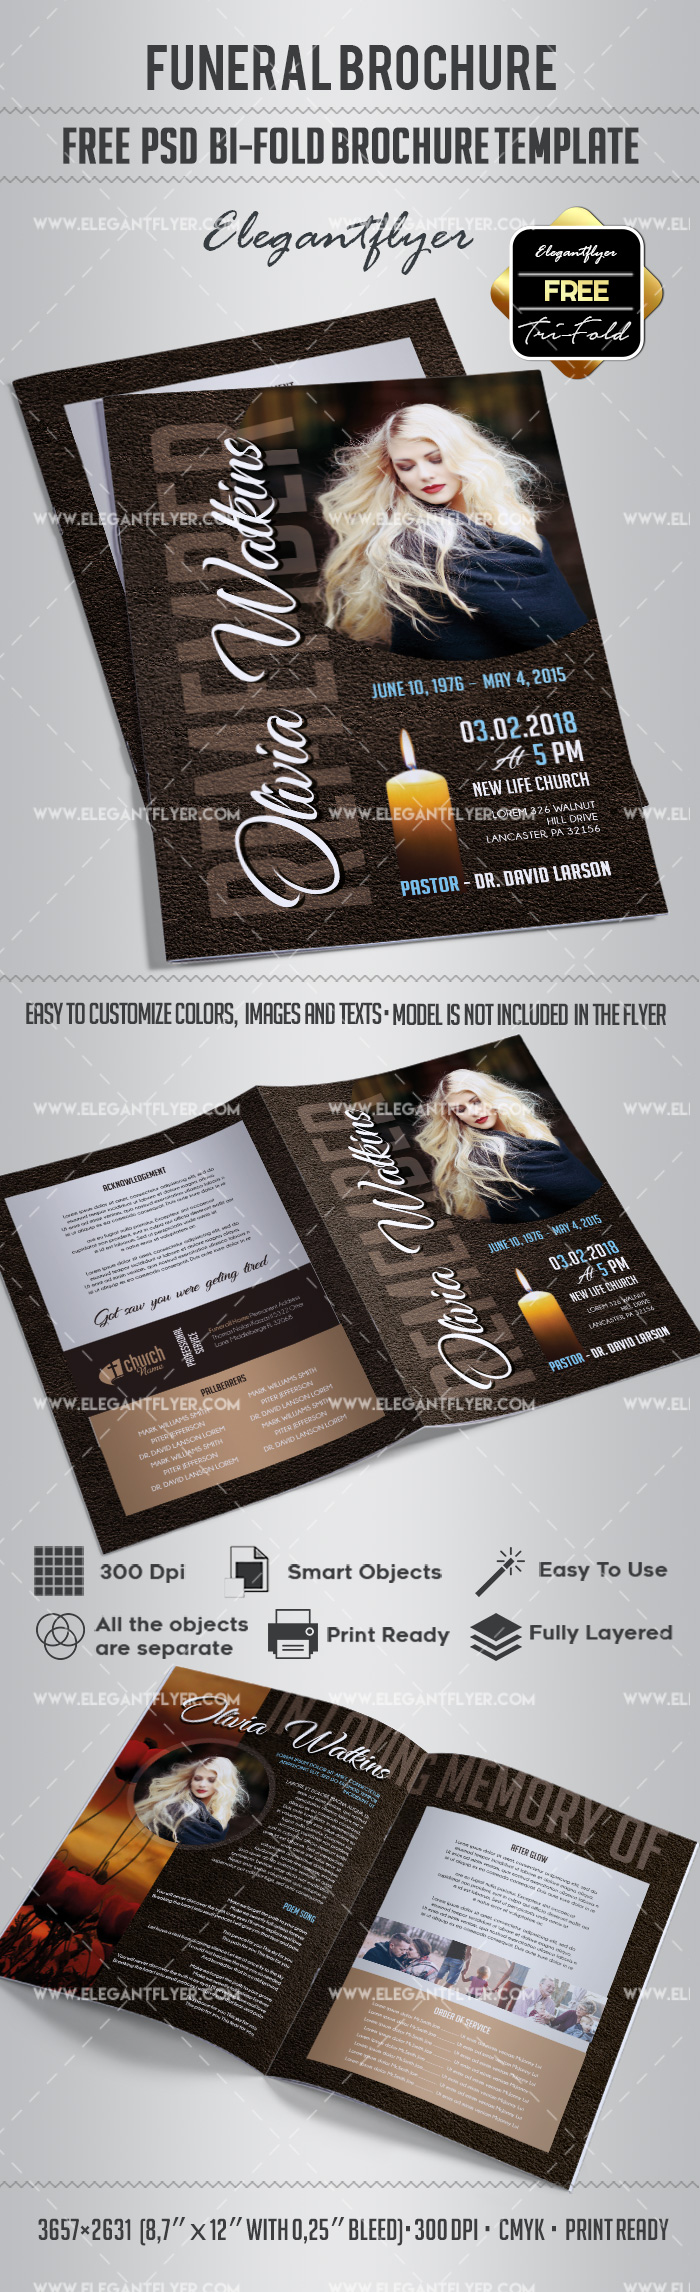 2 fold brochure template free - free bi fold brochure for funeral by elegantflyer